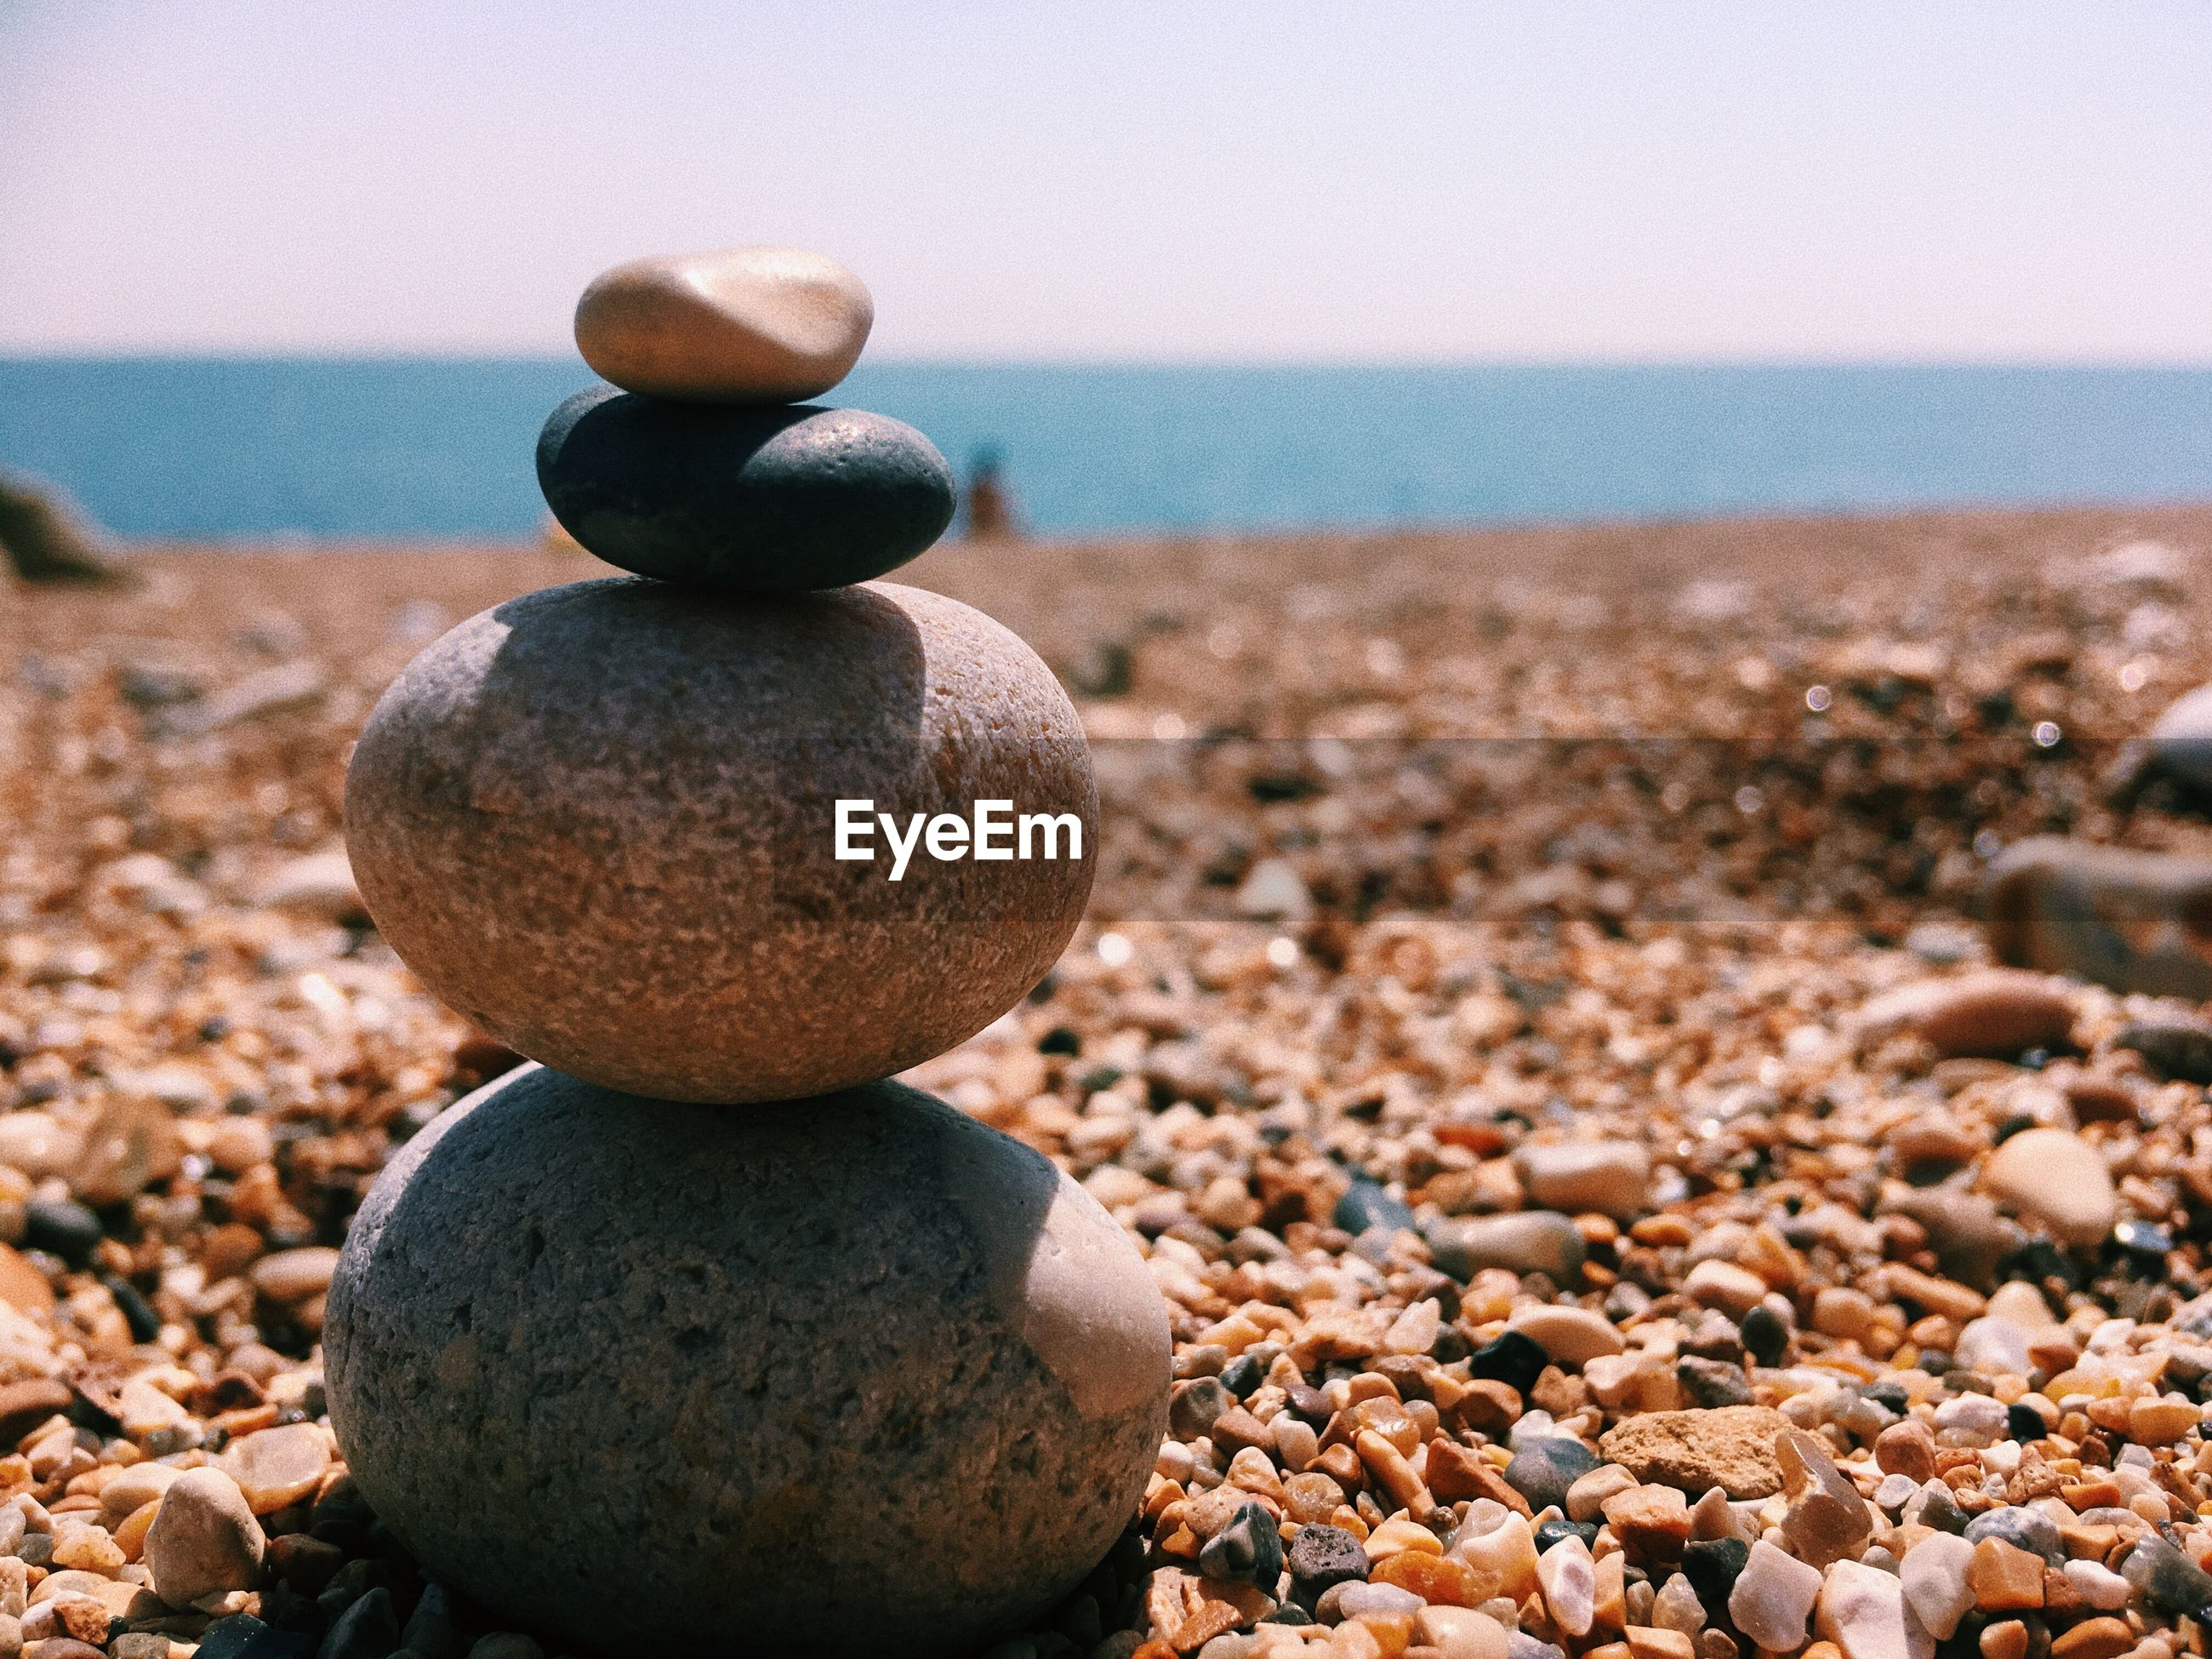 Stack of pebbles at beach during summer